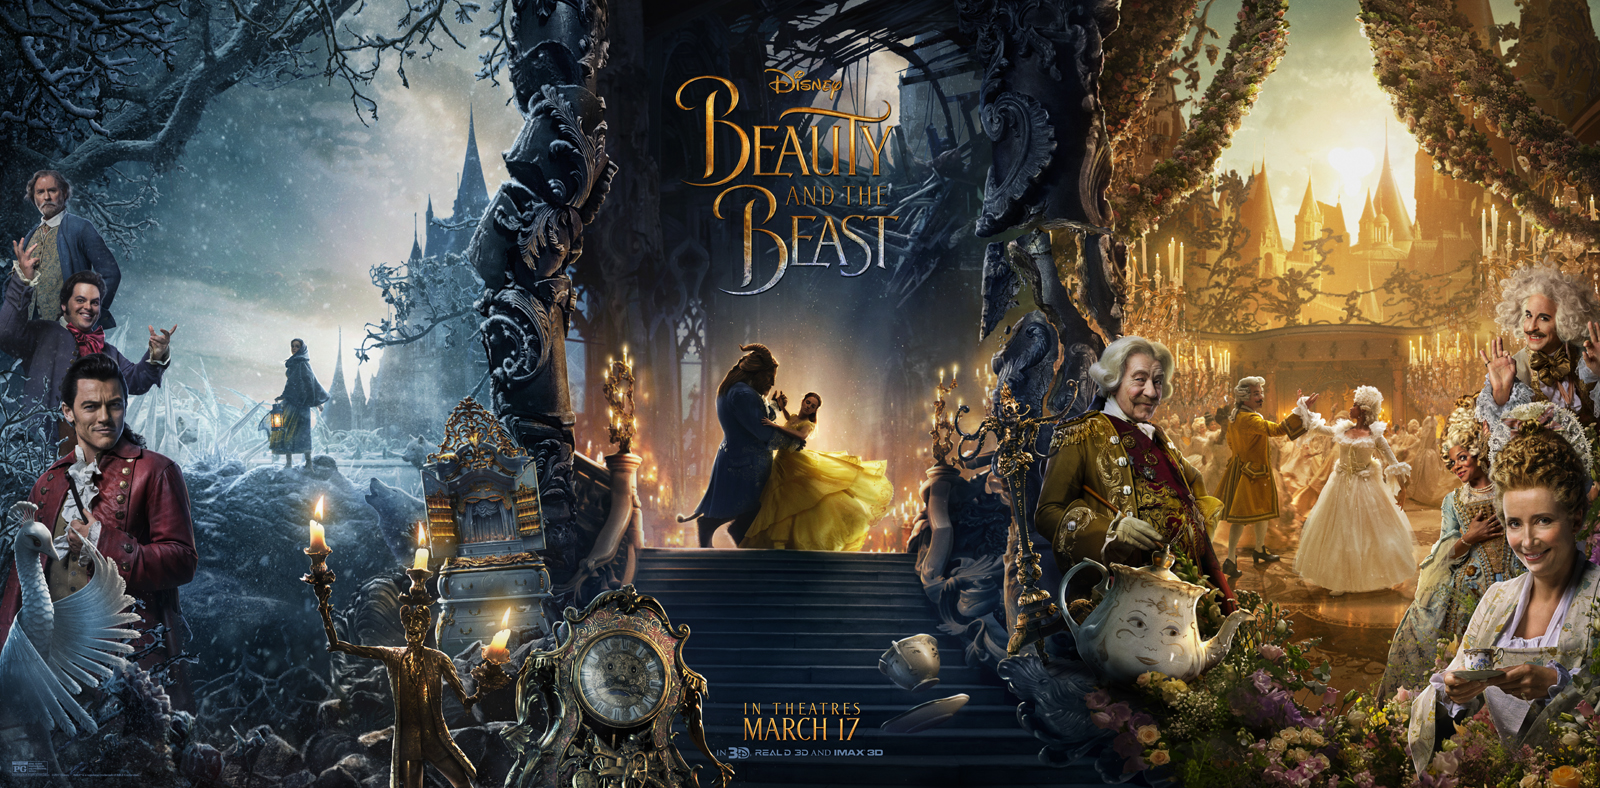 BEAUTY AND THE BEAST – Final Trailer!!!